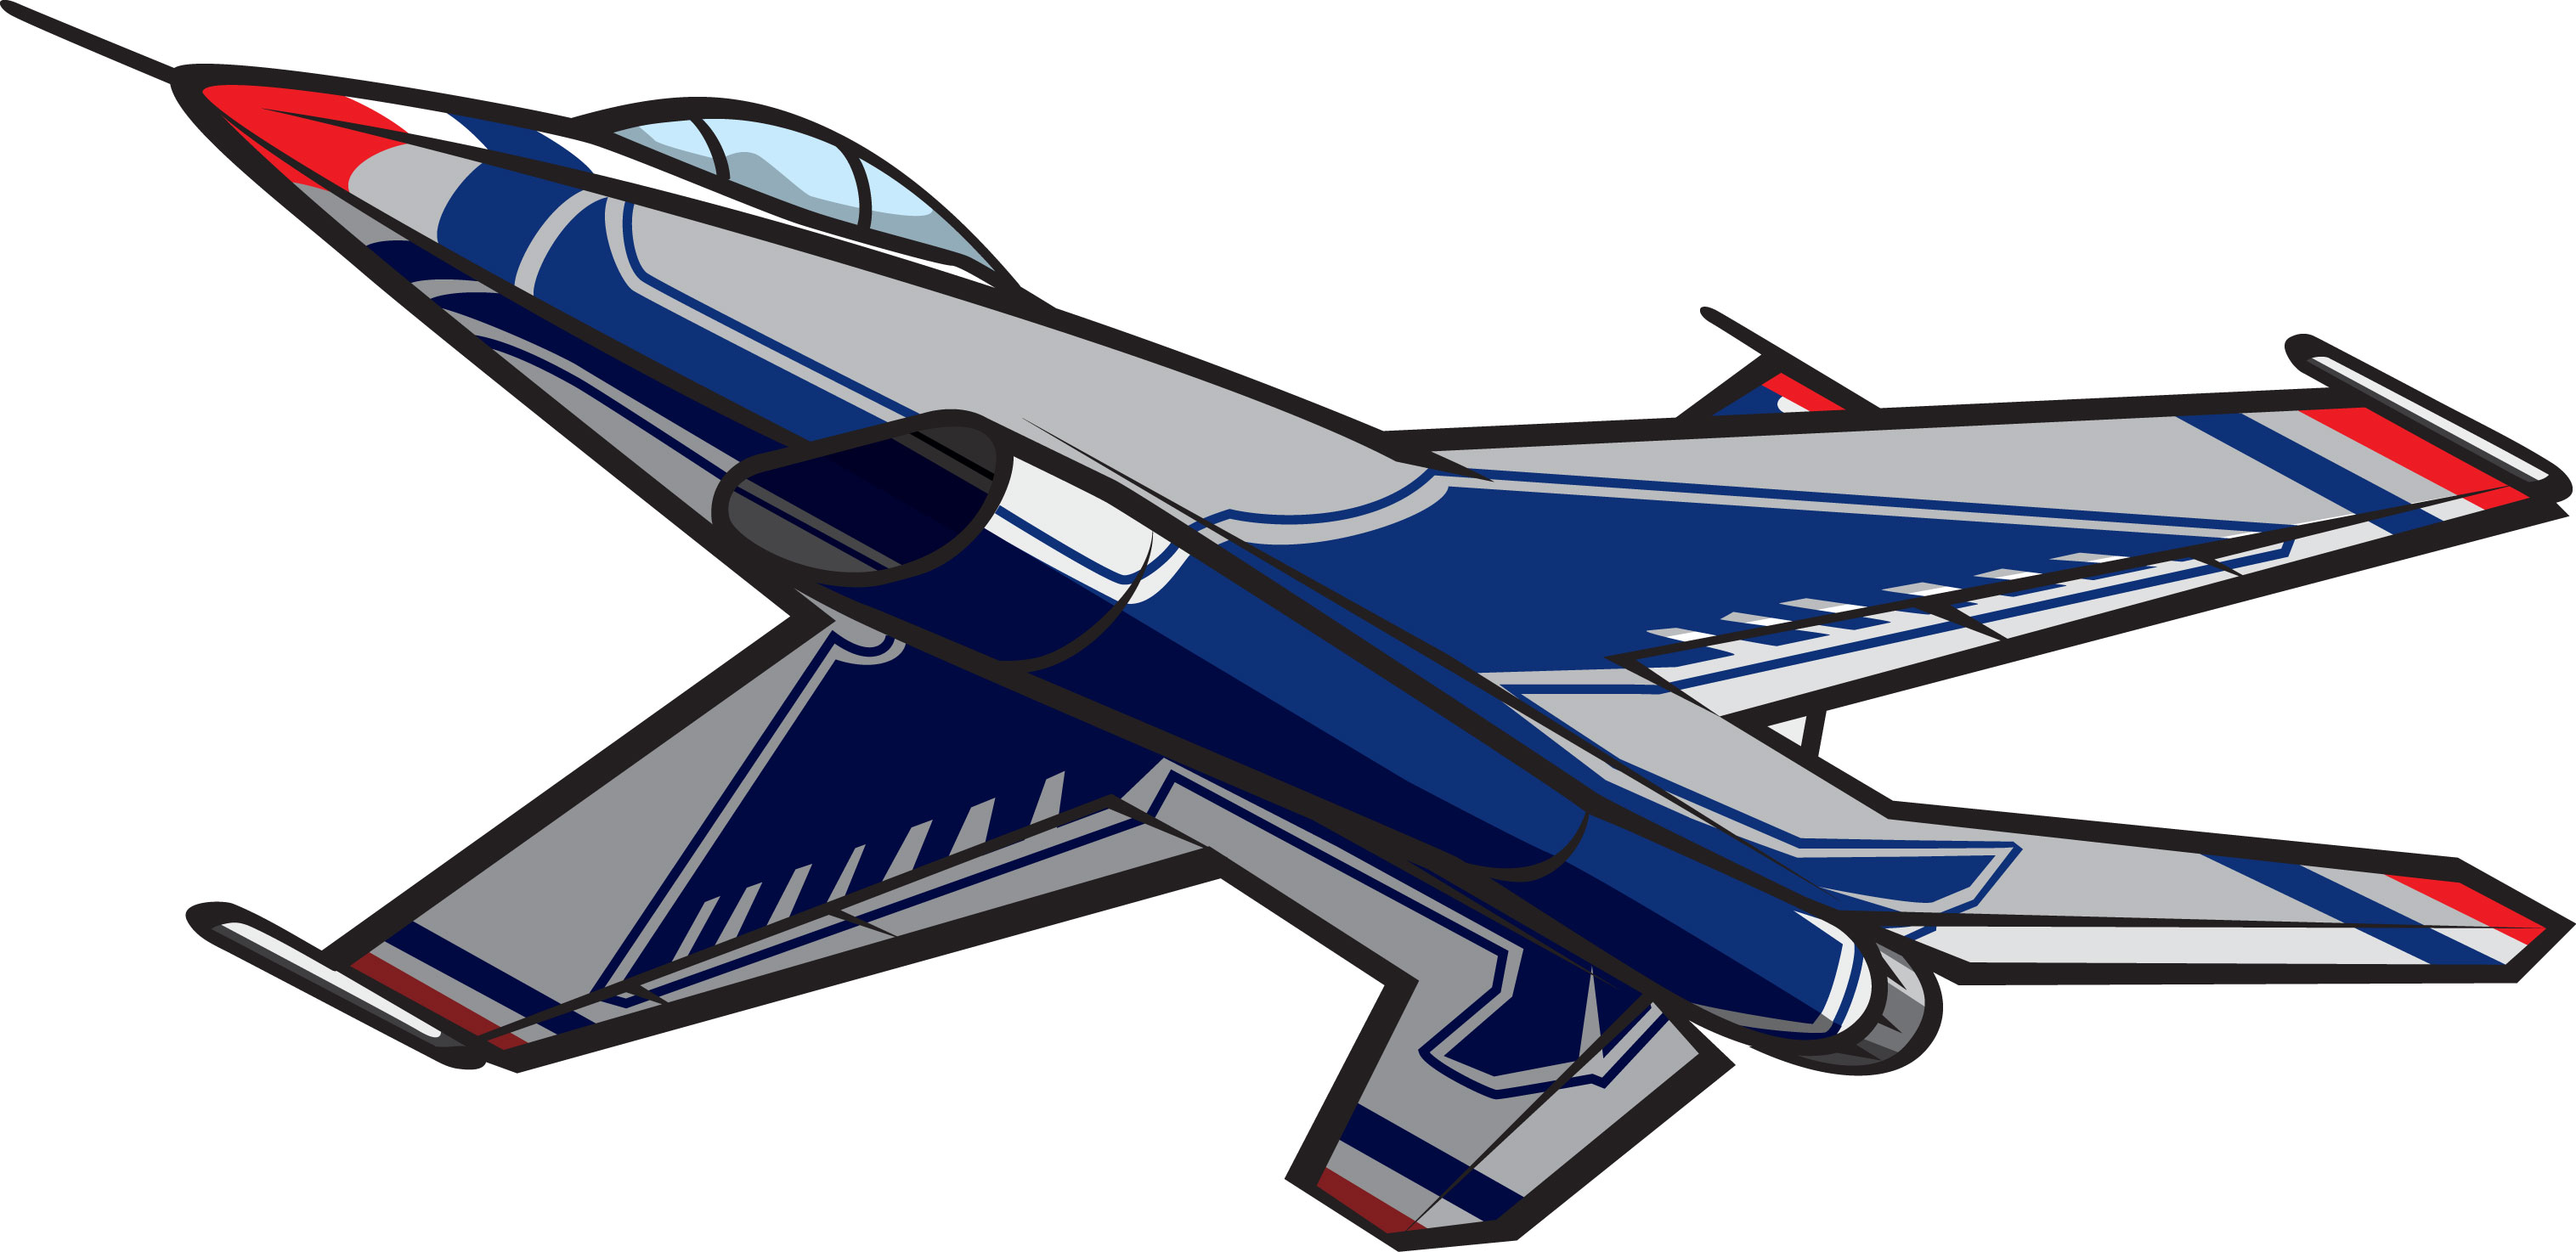 Army Jet Clipart - Clipart Kid